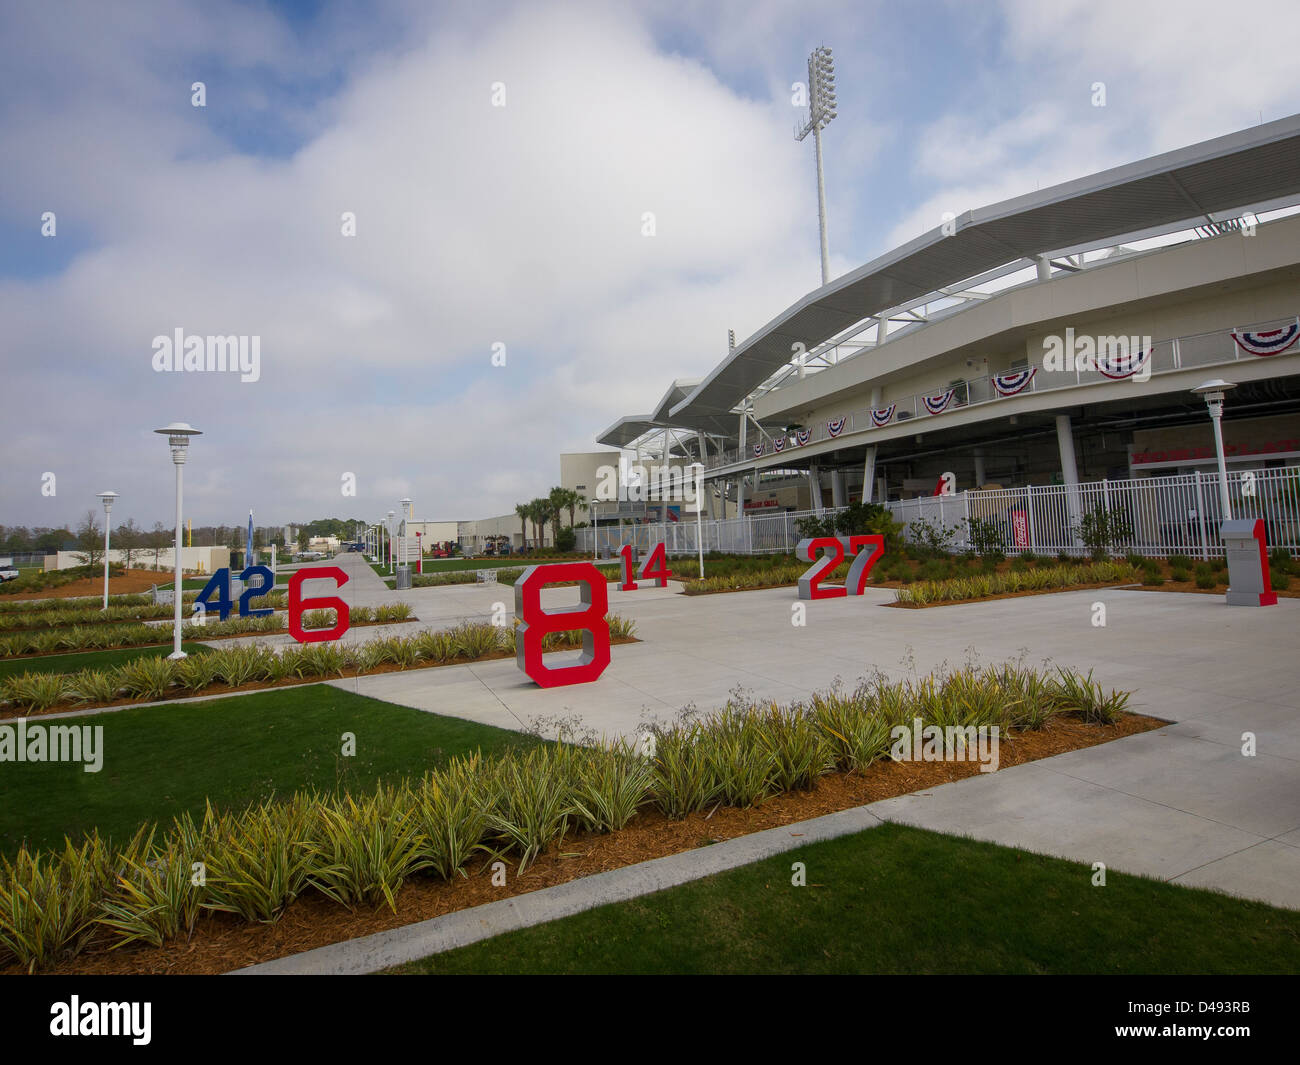 Like Fenway park in Boston, Fenway South is where the Boston Red Sox hold spring training in Fort Myers, Florida. - Stock Image